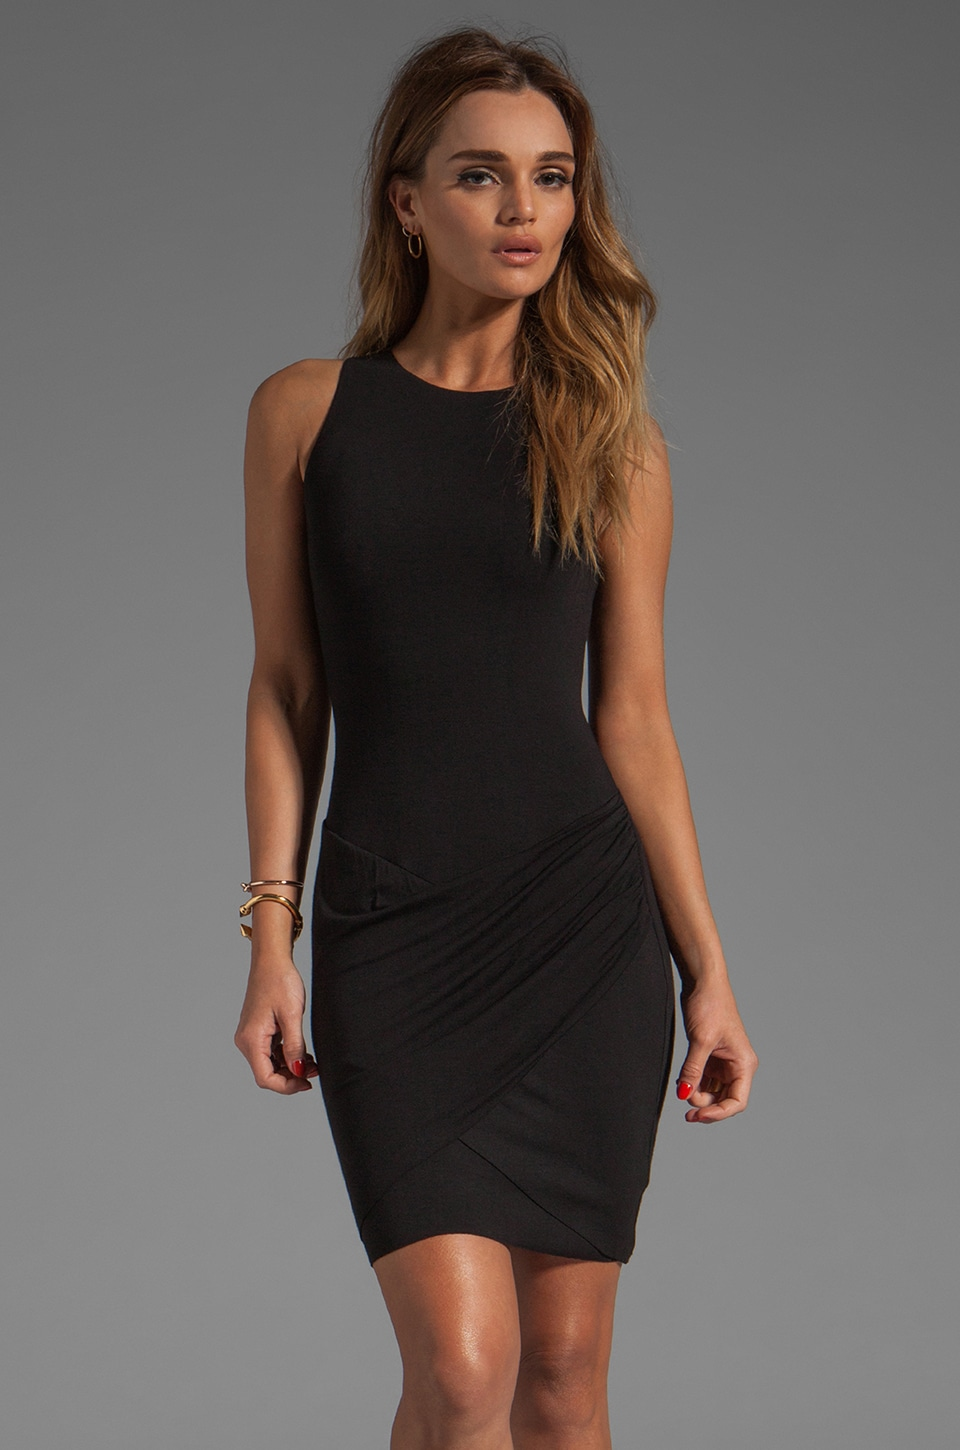 Bailey 44 Overdrive Dress in Black